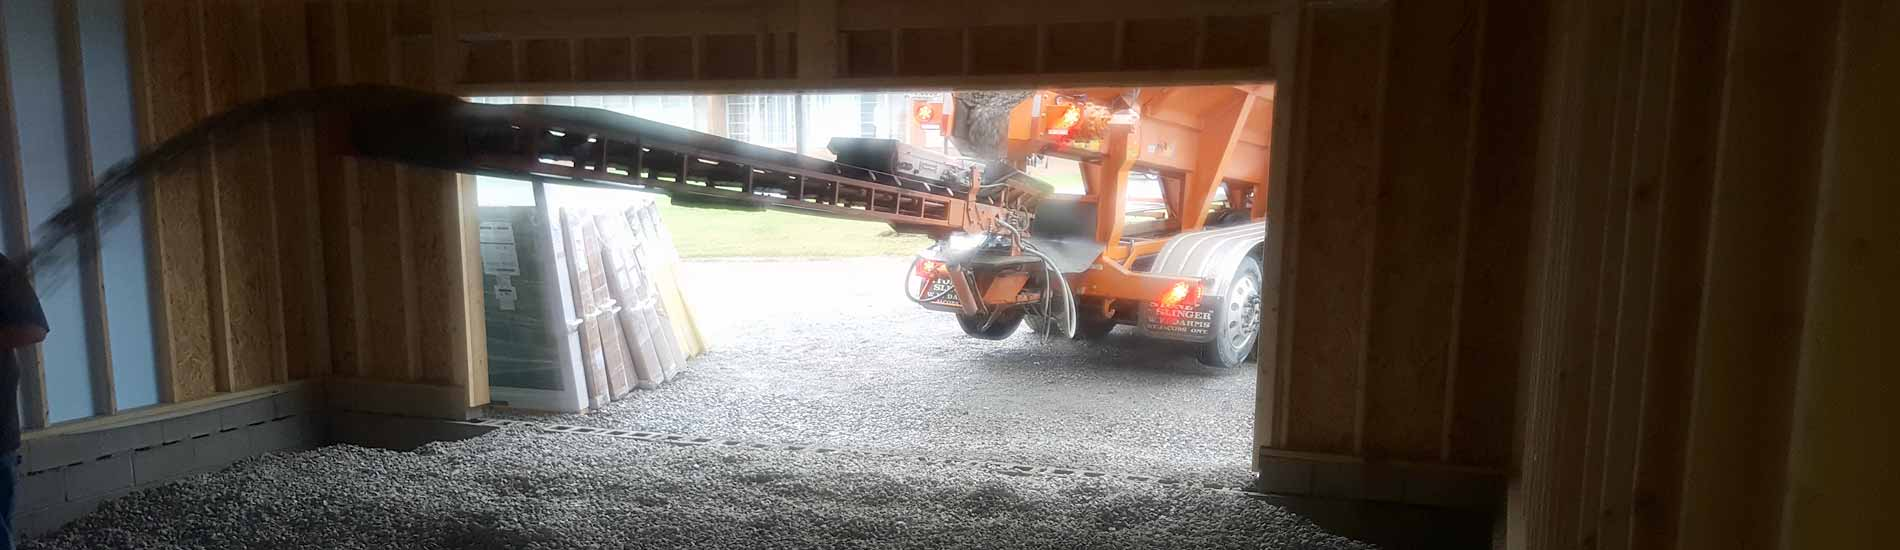 Stone slinger pouring crushed granite into a garage